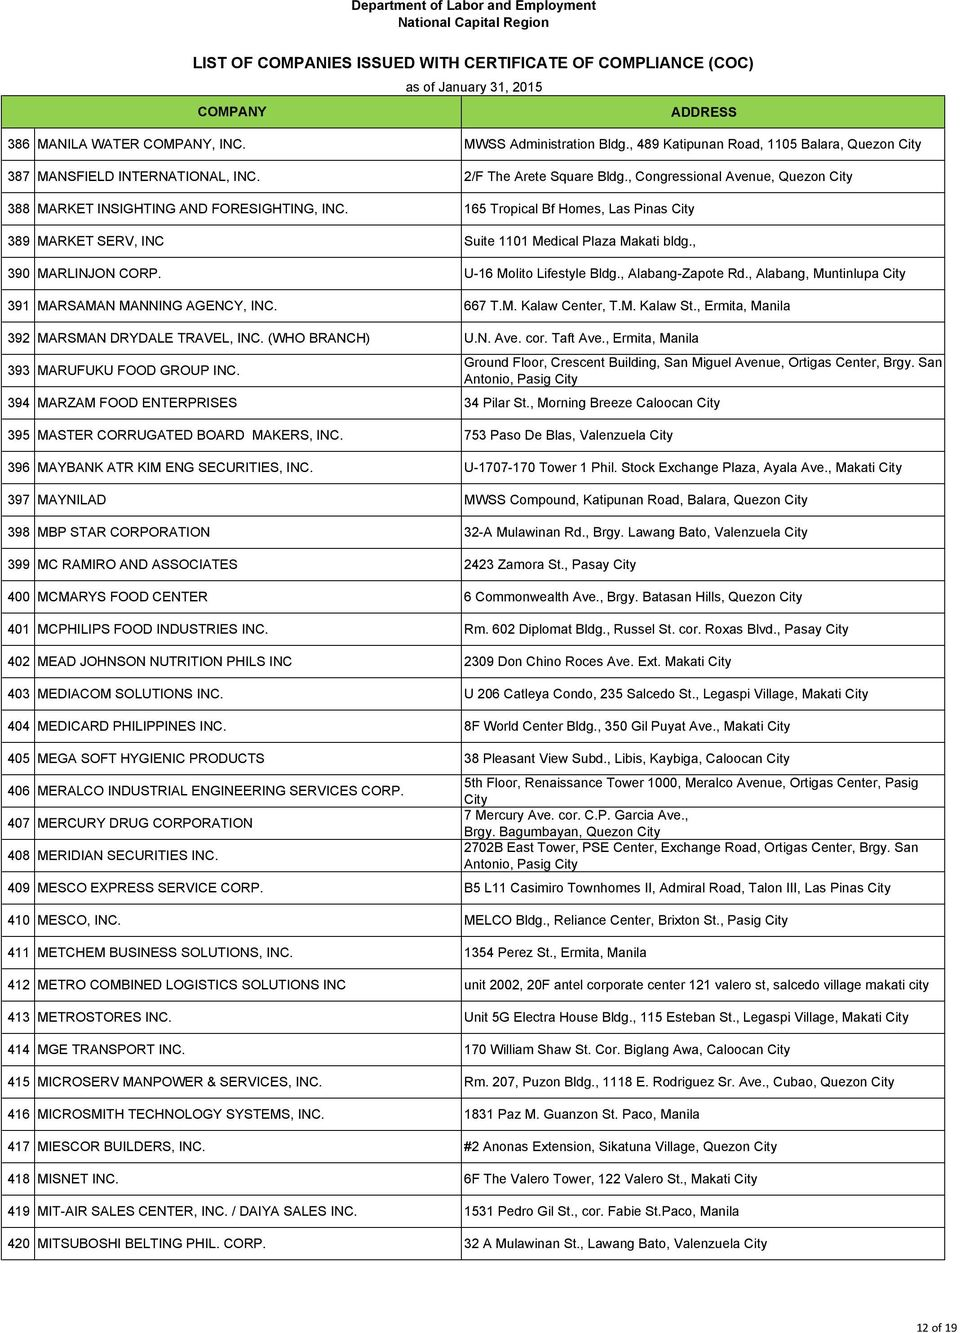 LIST OF COMPANIES ISSUED WITH CERTIFICATE OF COMPLIANCE (COC) - PDF